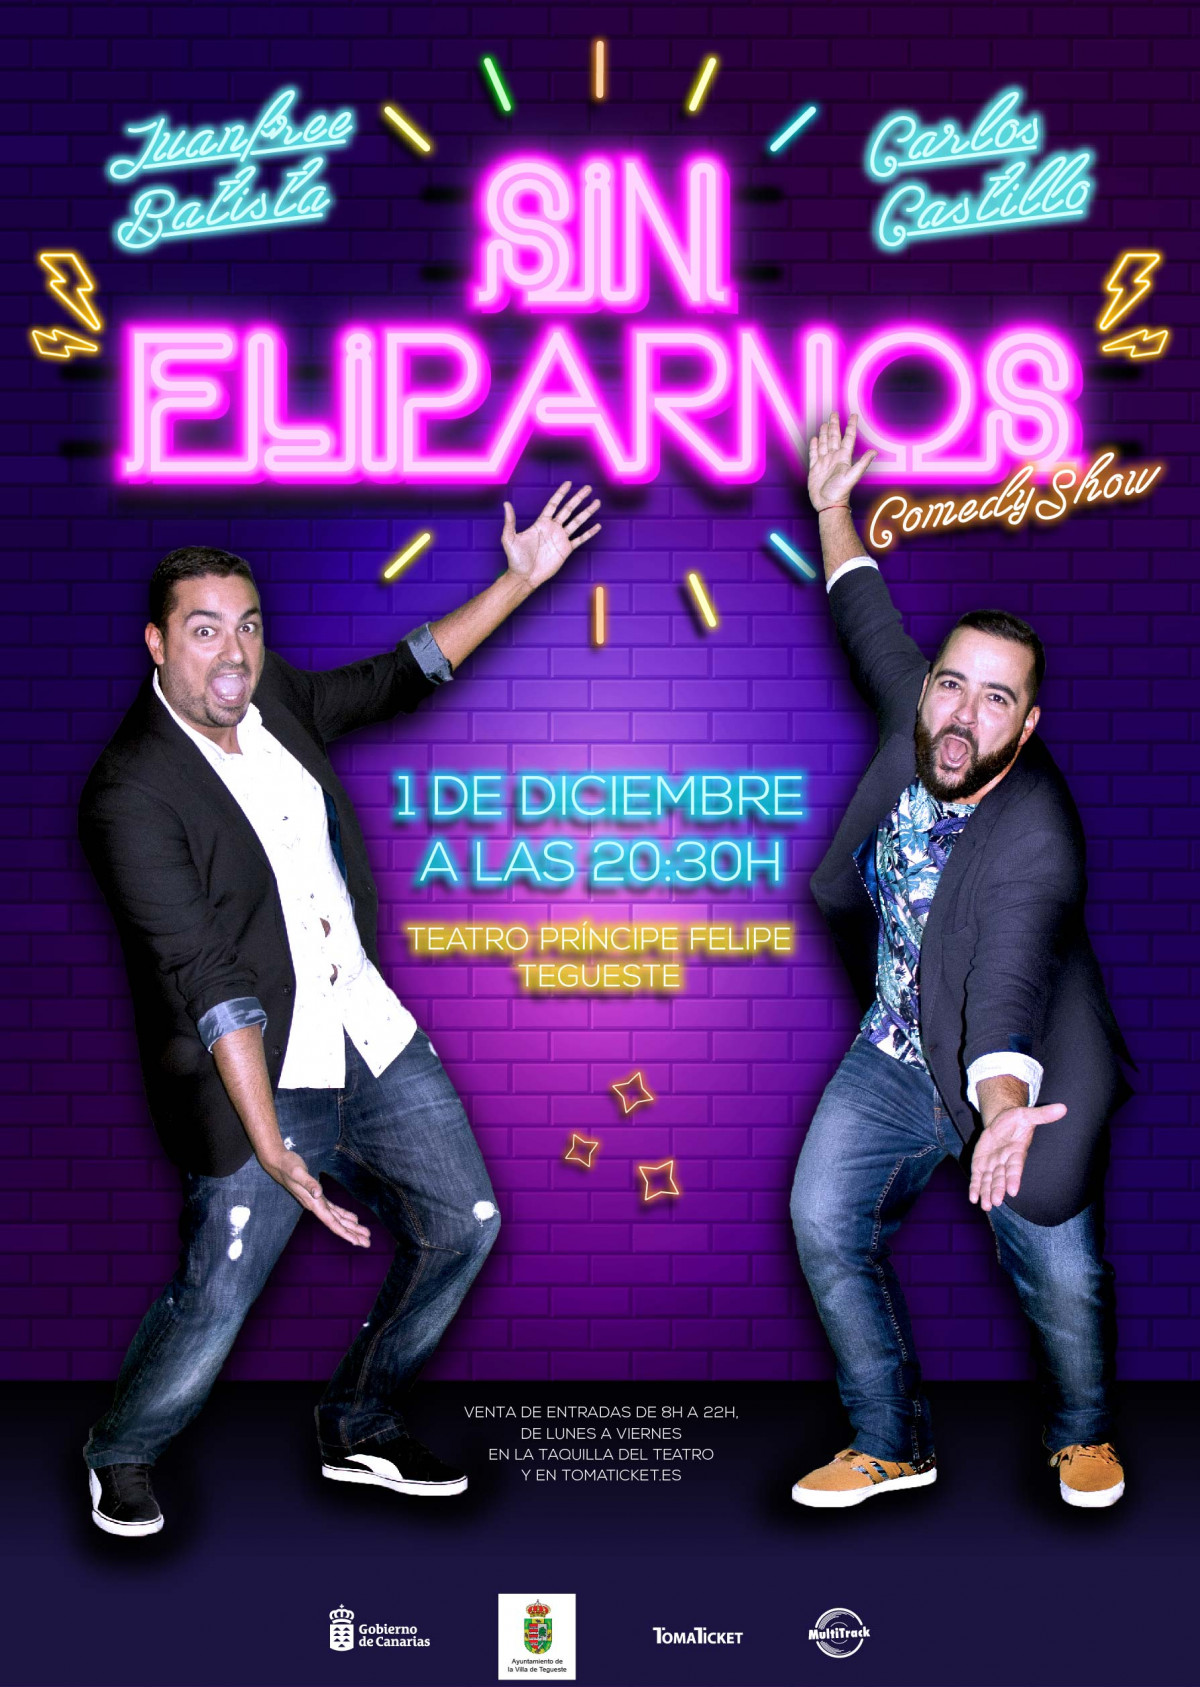 CARTEL JUANFREE BATISTA Y CARLOS CASTILLO   SIN FLIPARNOS MEDIA 01 copia